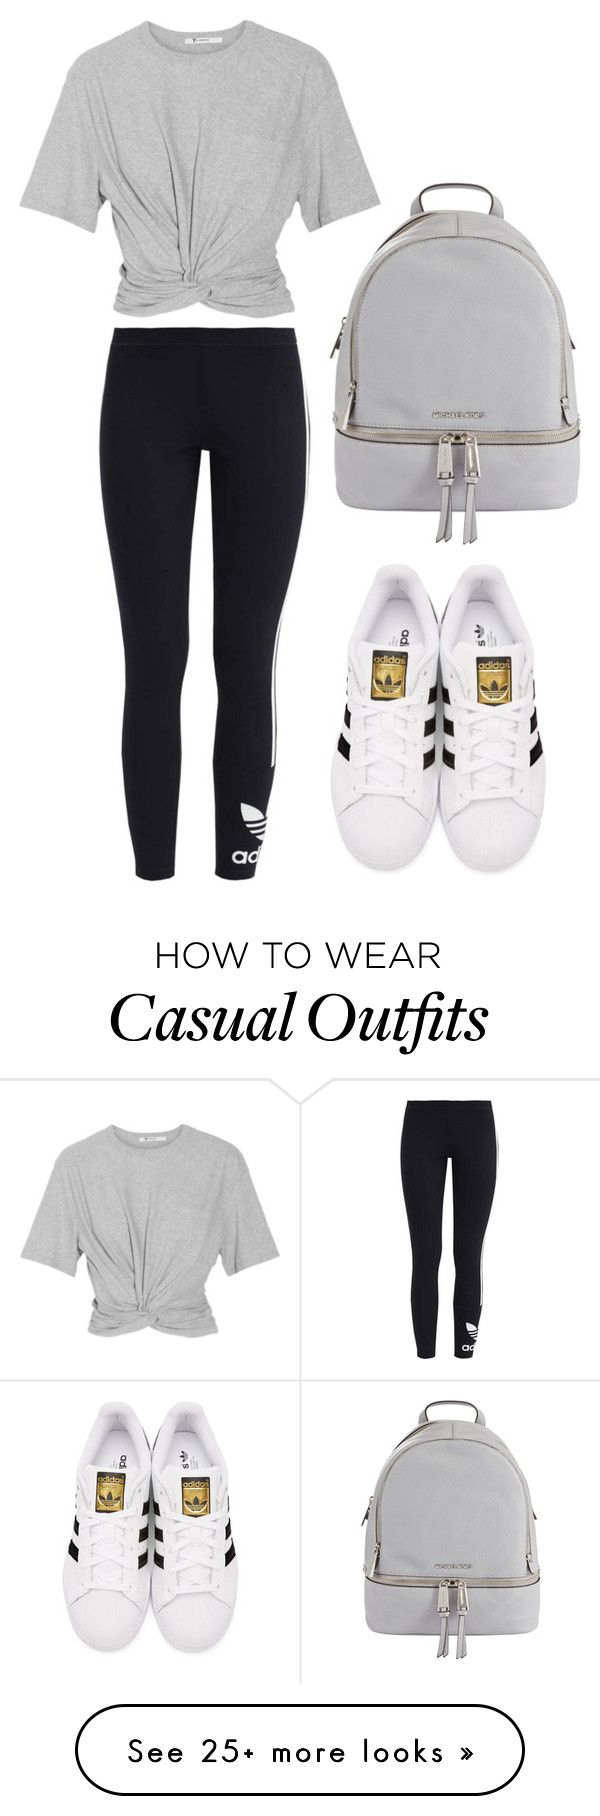 """""""Casual.1"""" by taylah14 on Polyvore featuring adidas Originals, T By Alexander Wang and MICHAEL Michael Kors"""